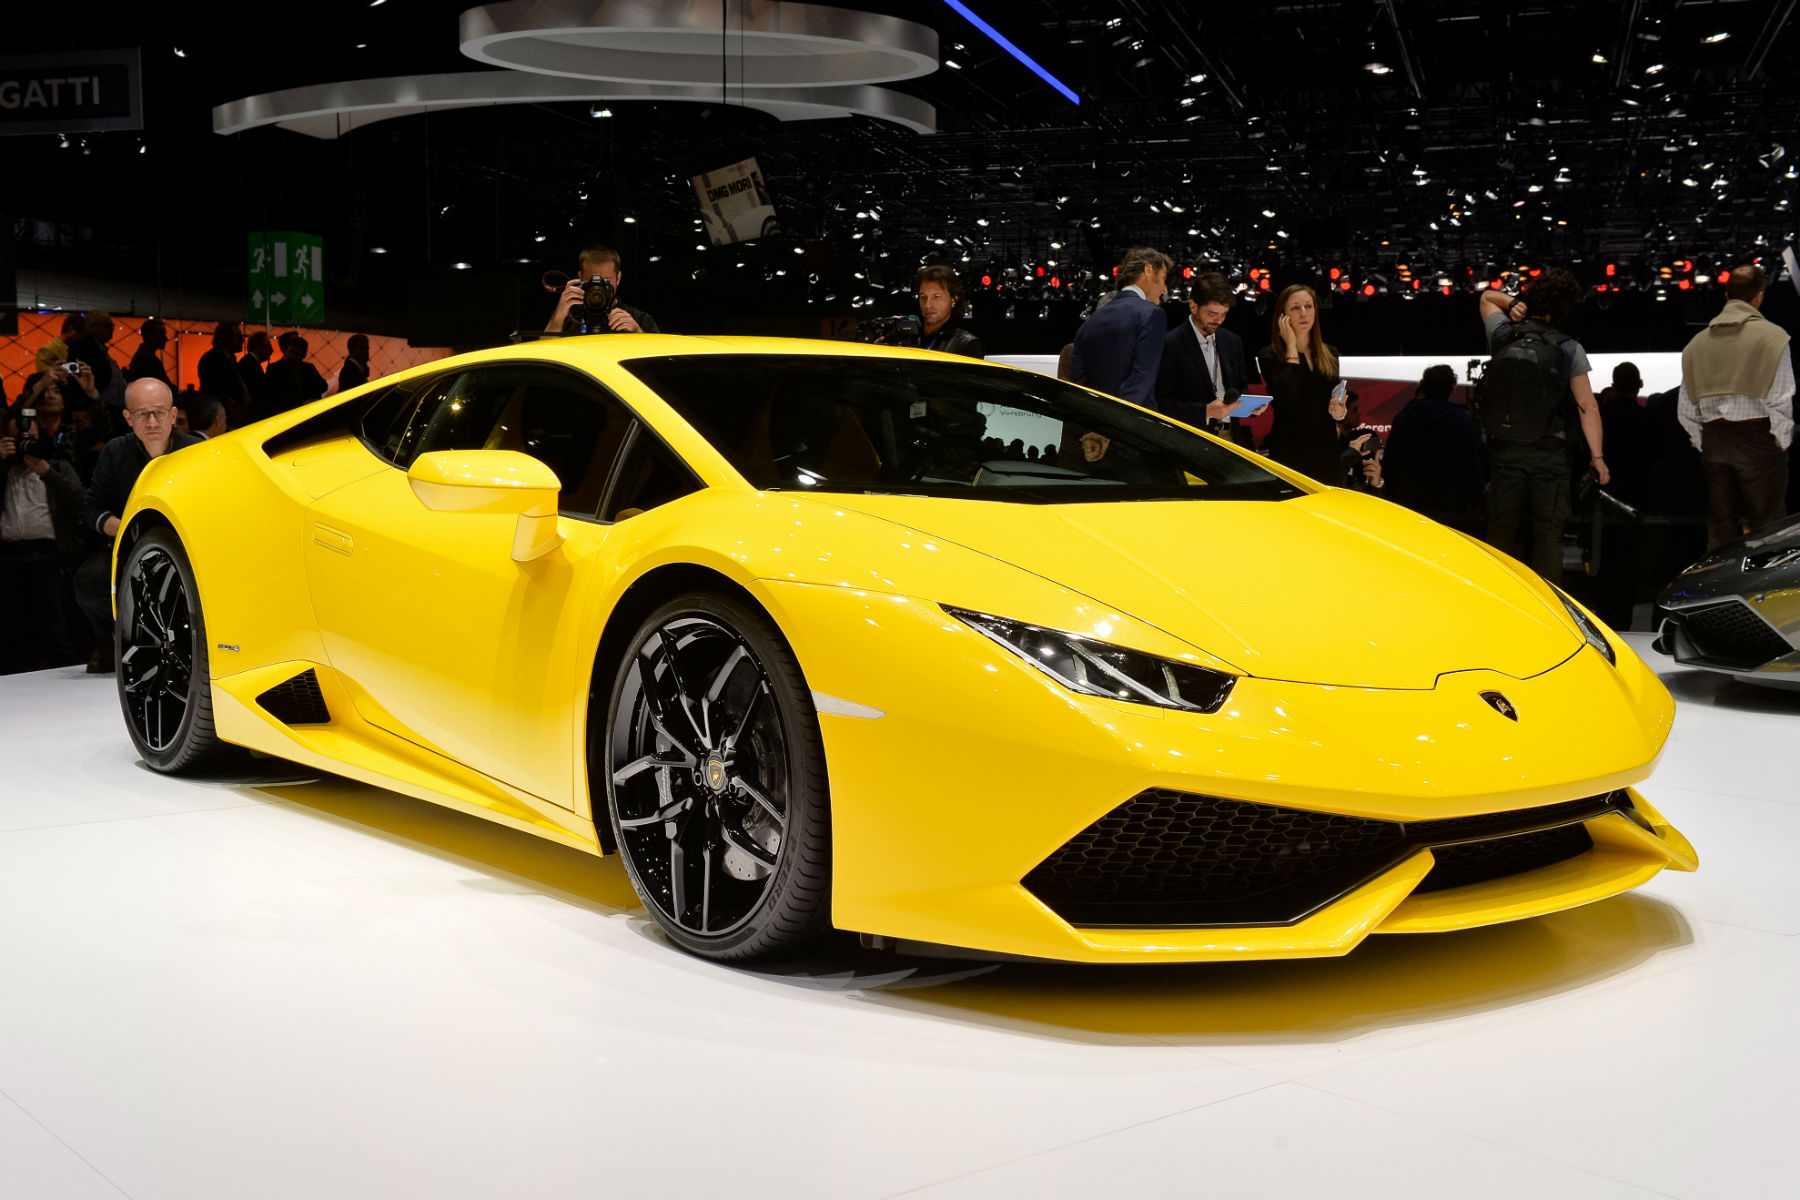 A Lamborghini Huracan has been given a taxi licence